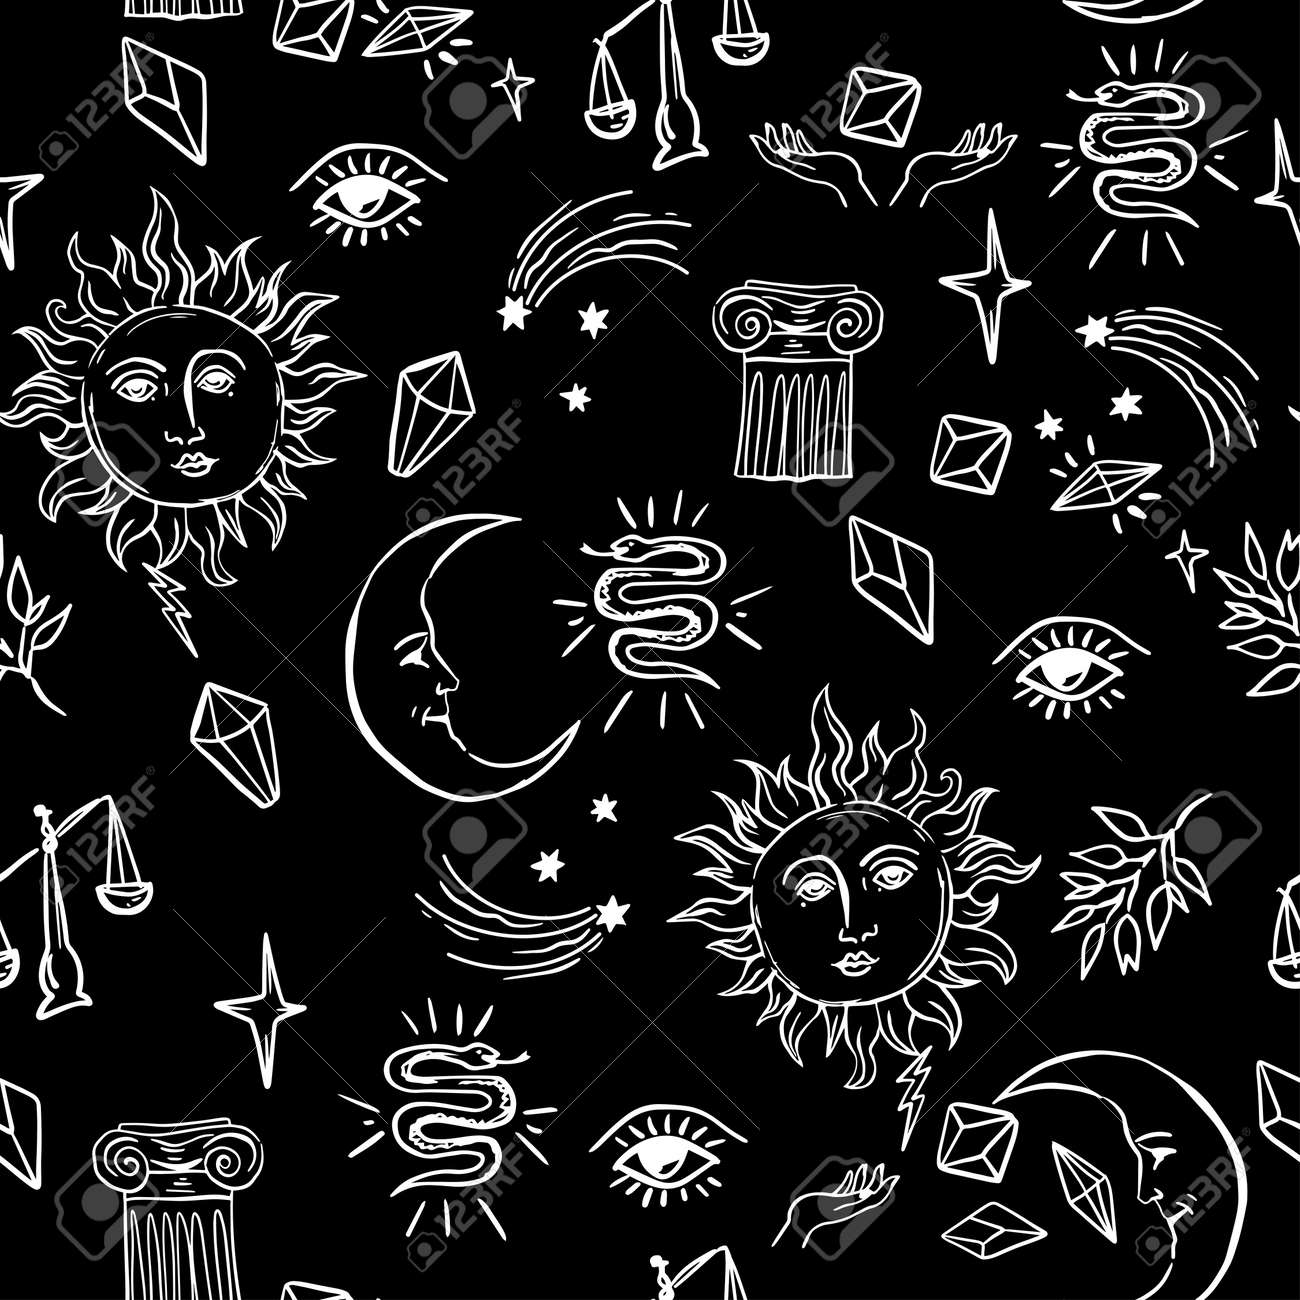 Doodle hand drawn vector seamless pattern with magic attributes,sun and moon, tarot symbols. - 158589839